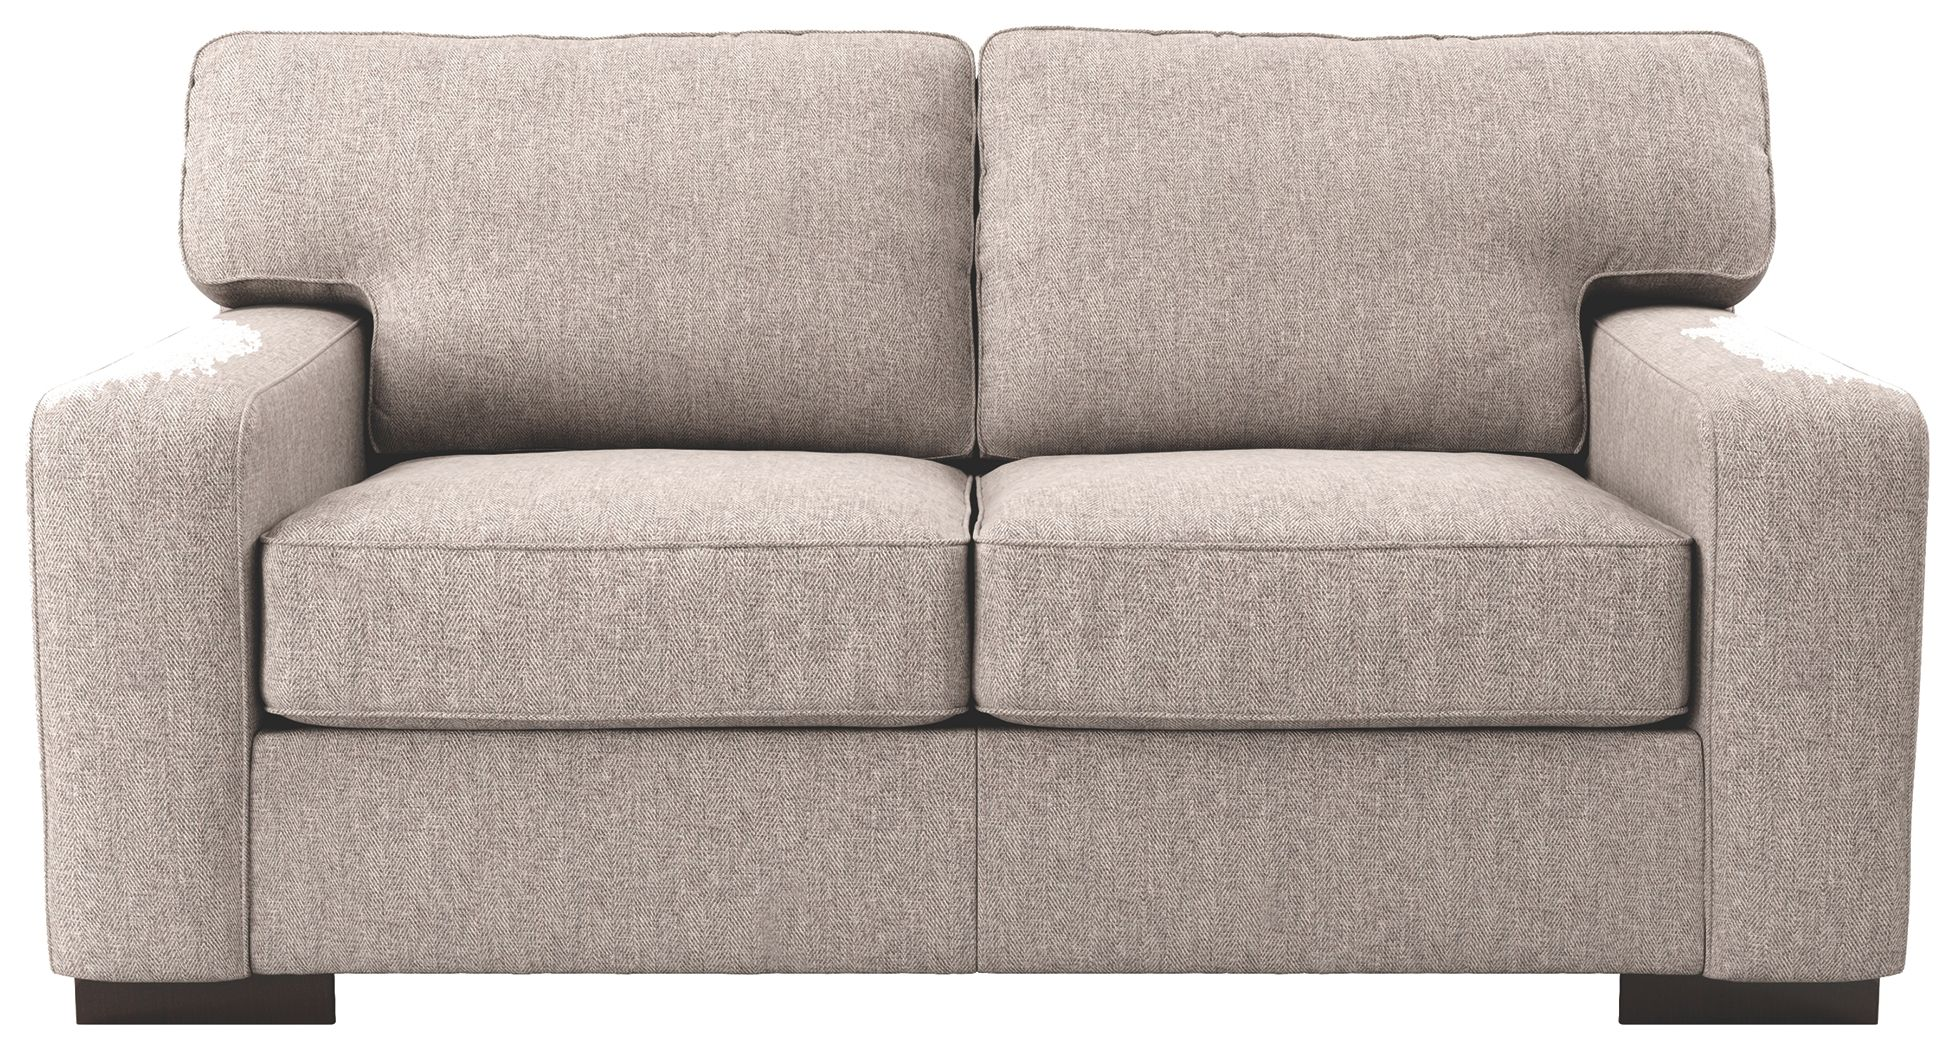 Ashlor Nuvella Loveseat Slate Ashley Furniture Sofas Ashley